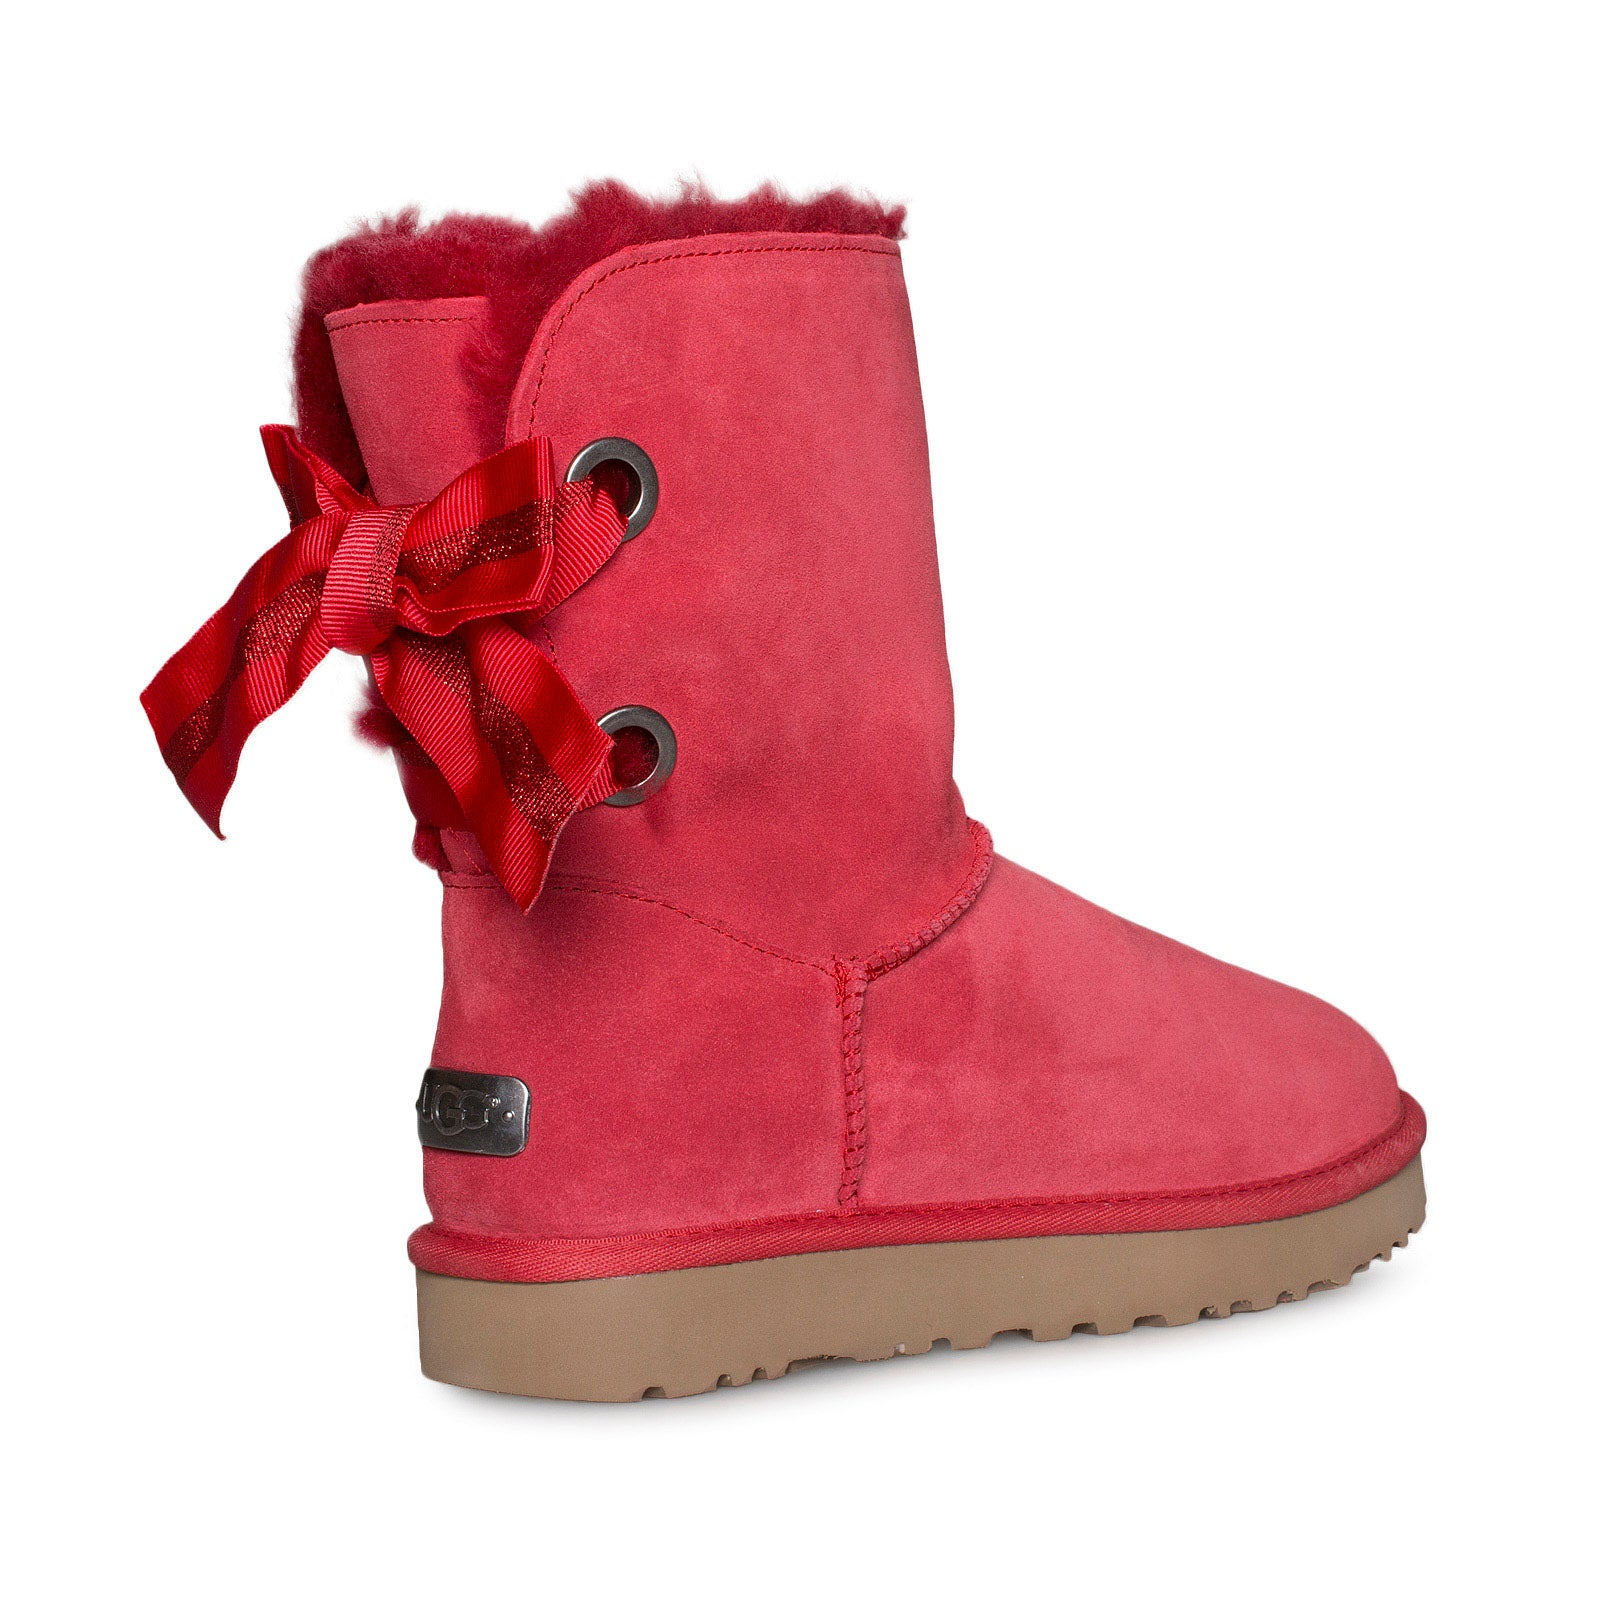 e743e06da4e UGG Customizable Bailey Bow Short Ribbon Red Boots - Women's